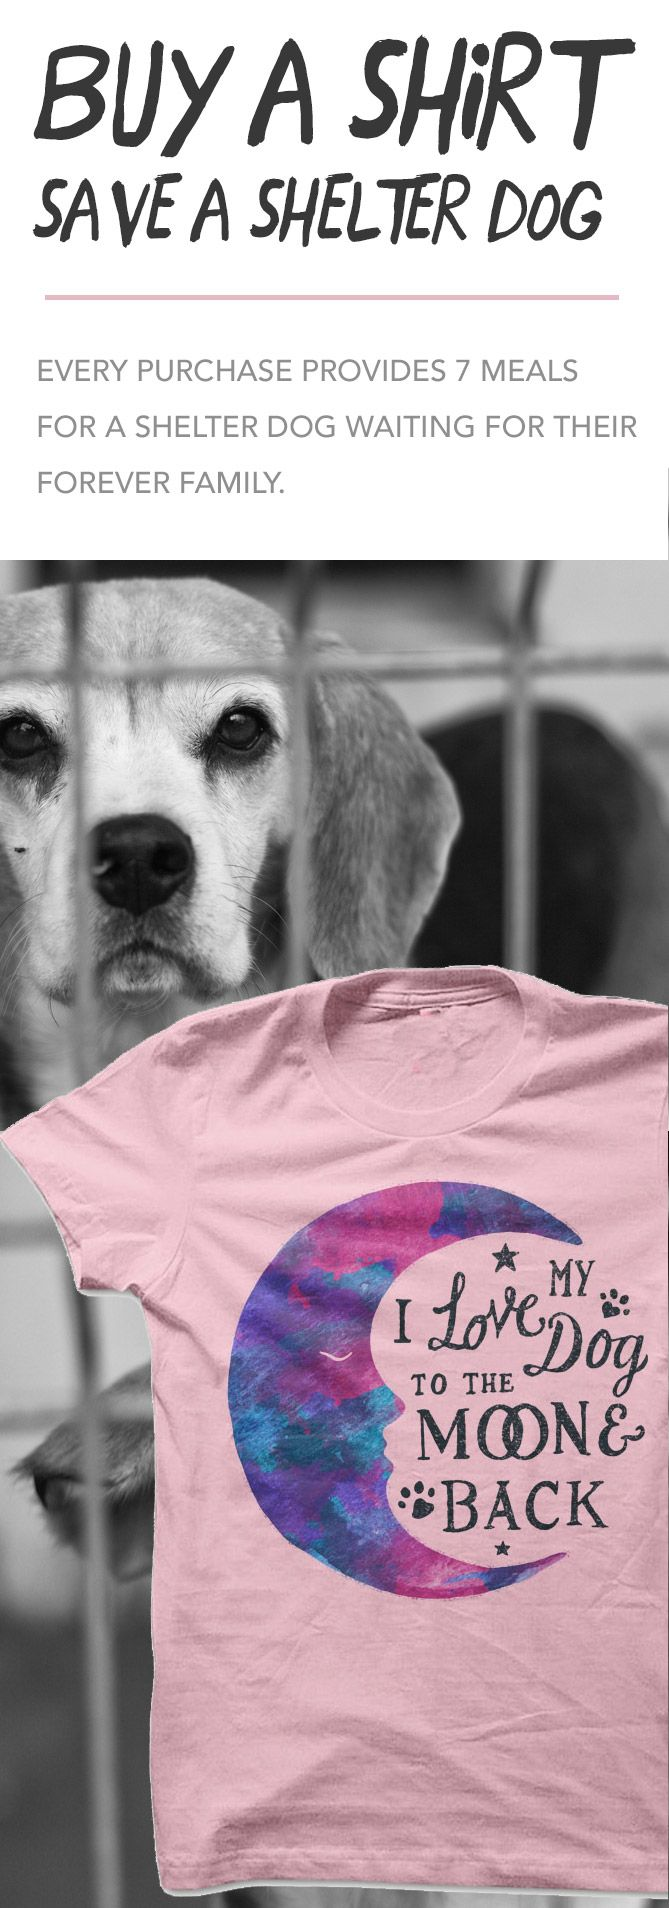 best images about teagan on pinterest dog mom dog pillows and